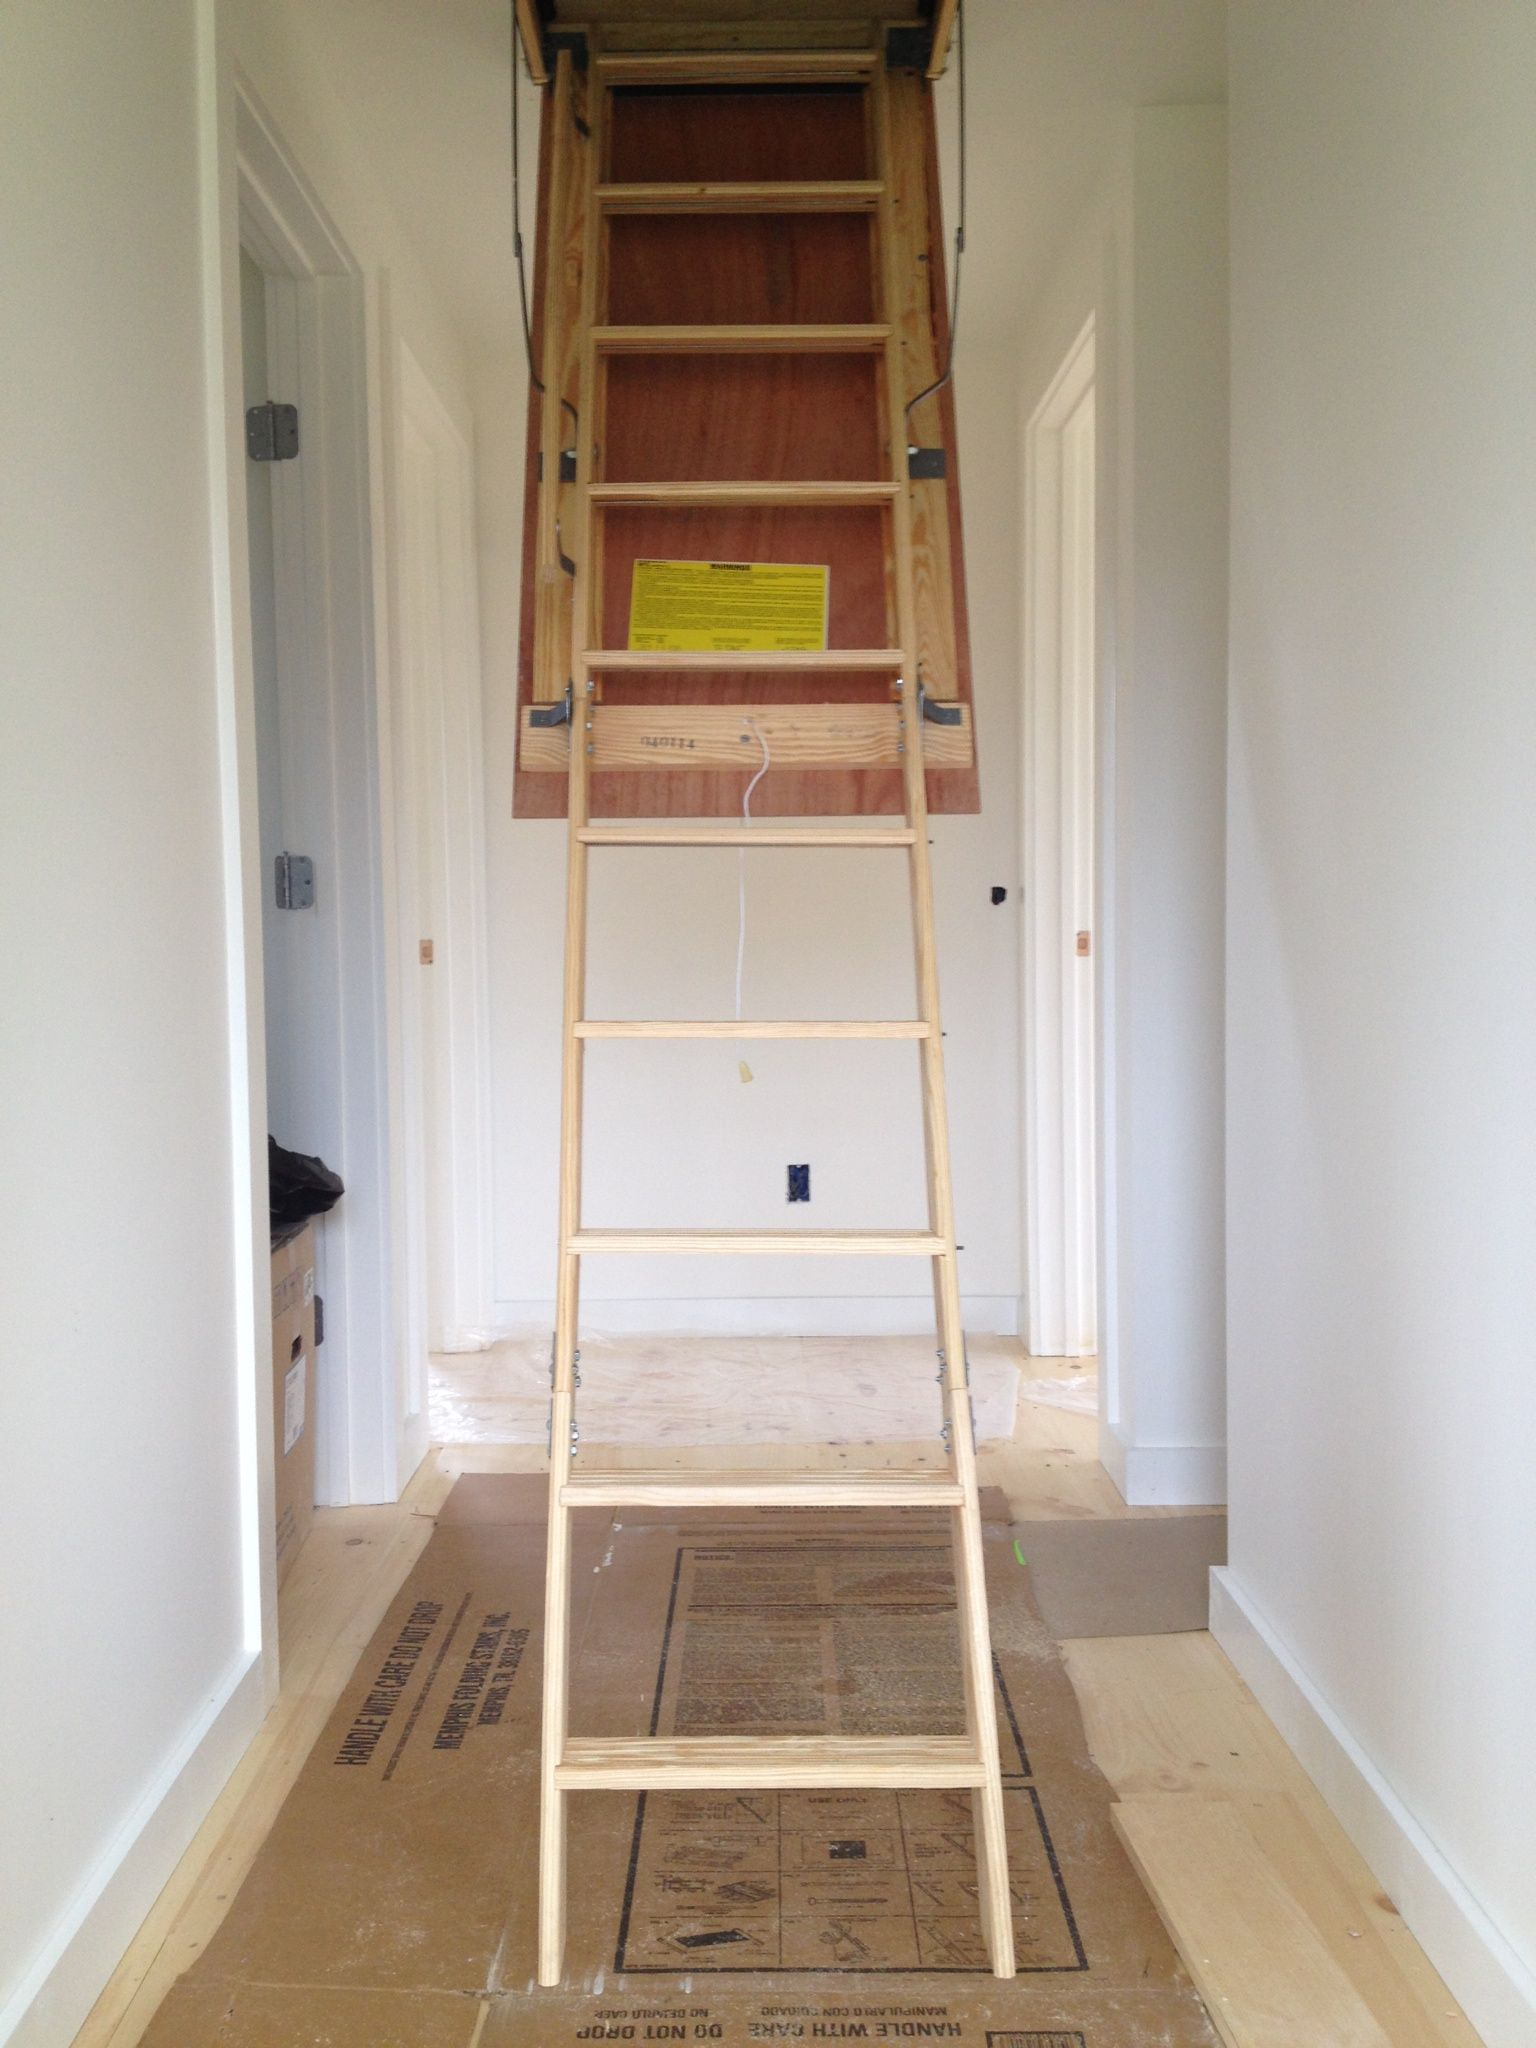 37 The Most Creative Attic Stairs Ideas For Modern Urban Homes Attic Stairs Attic Renovation Tiny House Big Living